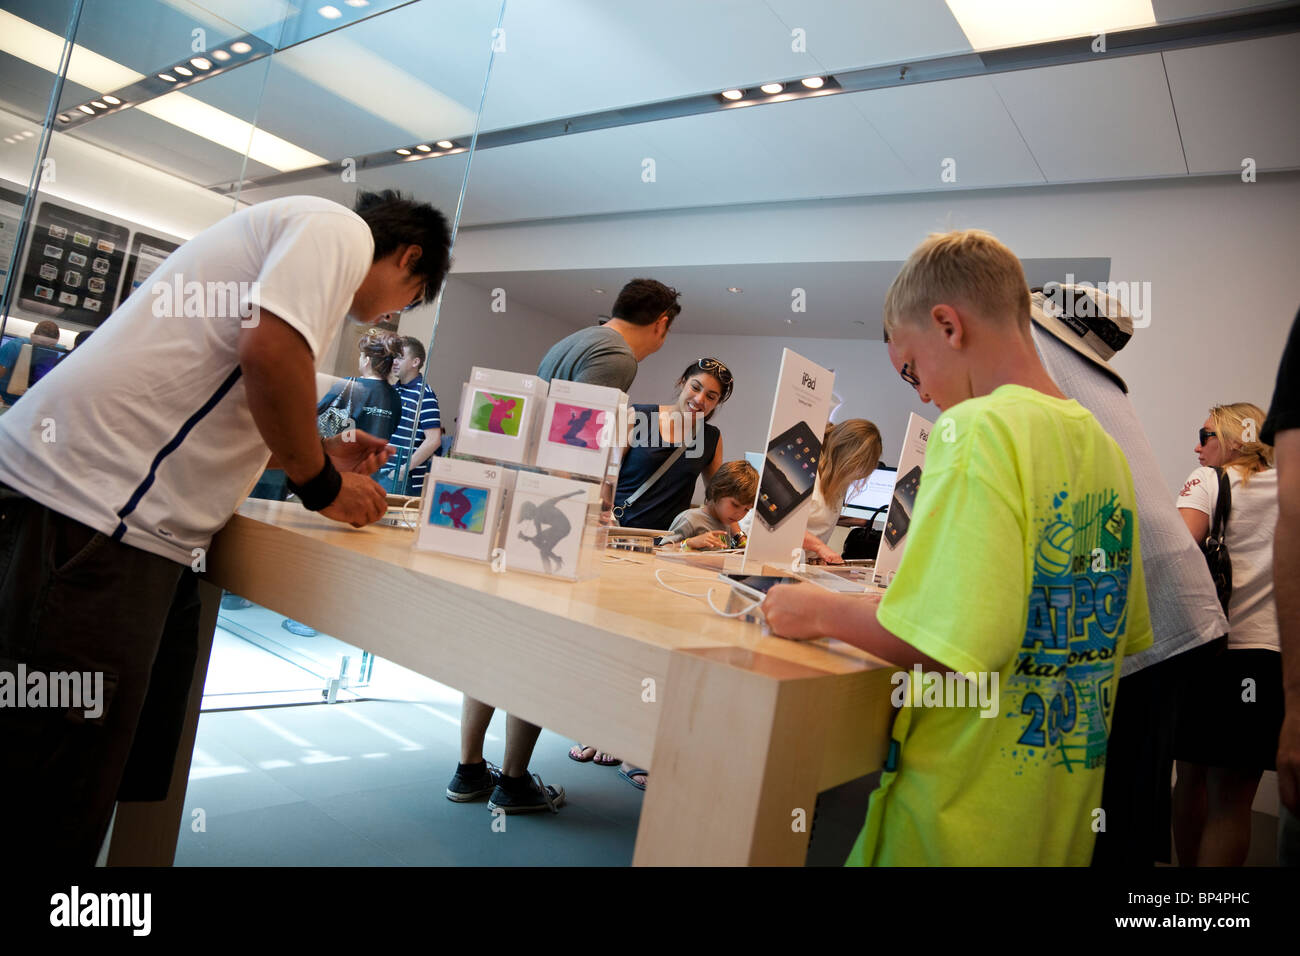 People try out the iPad in an Apple store in Los Angeles, California, USA. - Stock Image